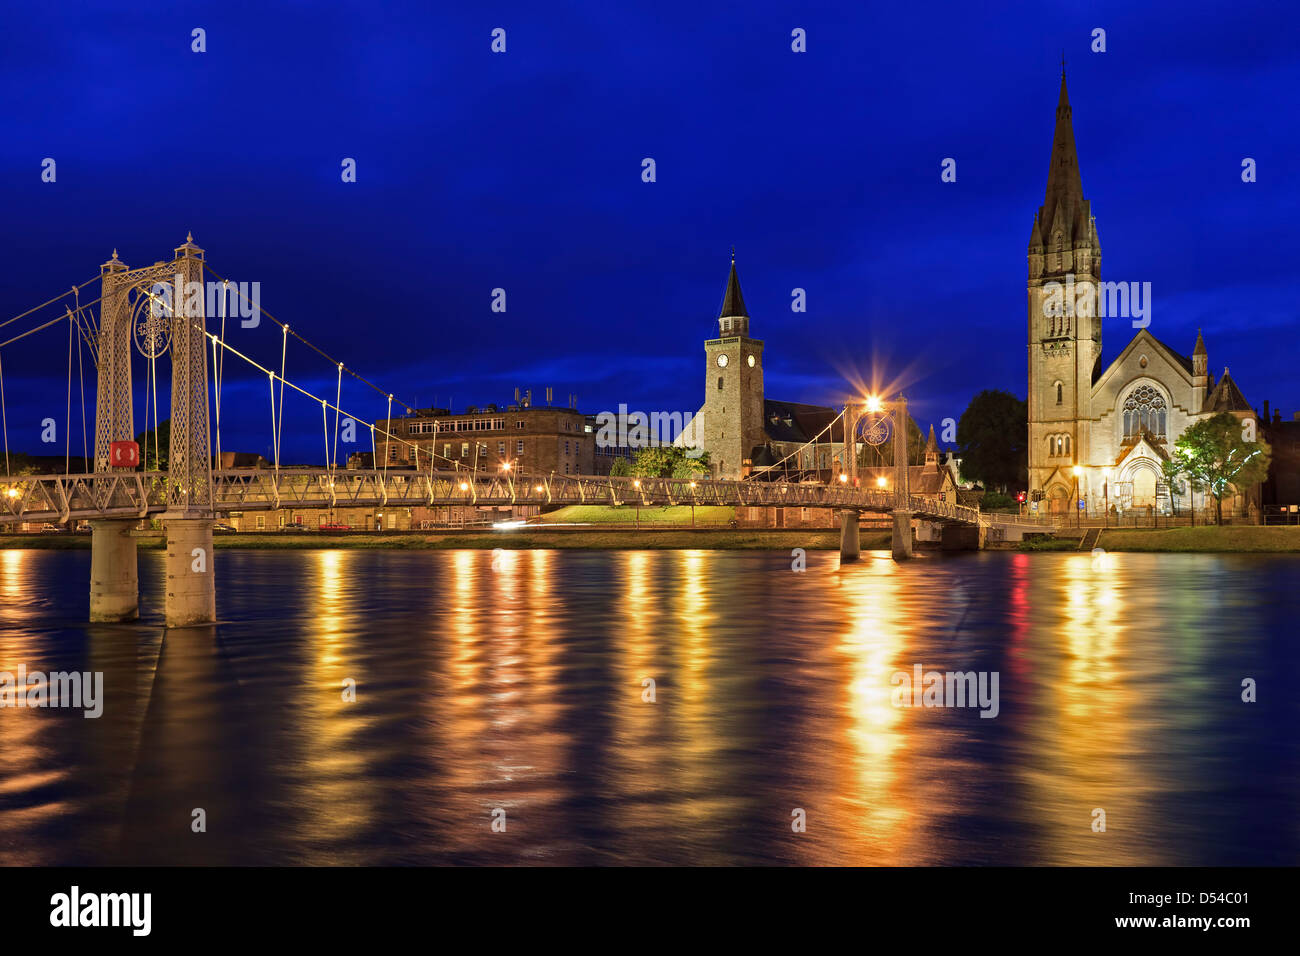 Footbridge over River Ness and churches, Inverness, Scotland, United Kingdom - Stock Image